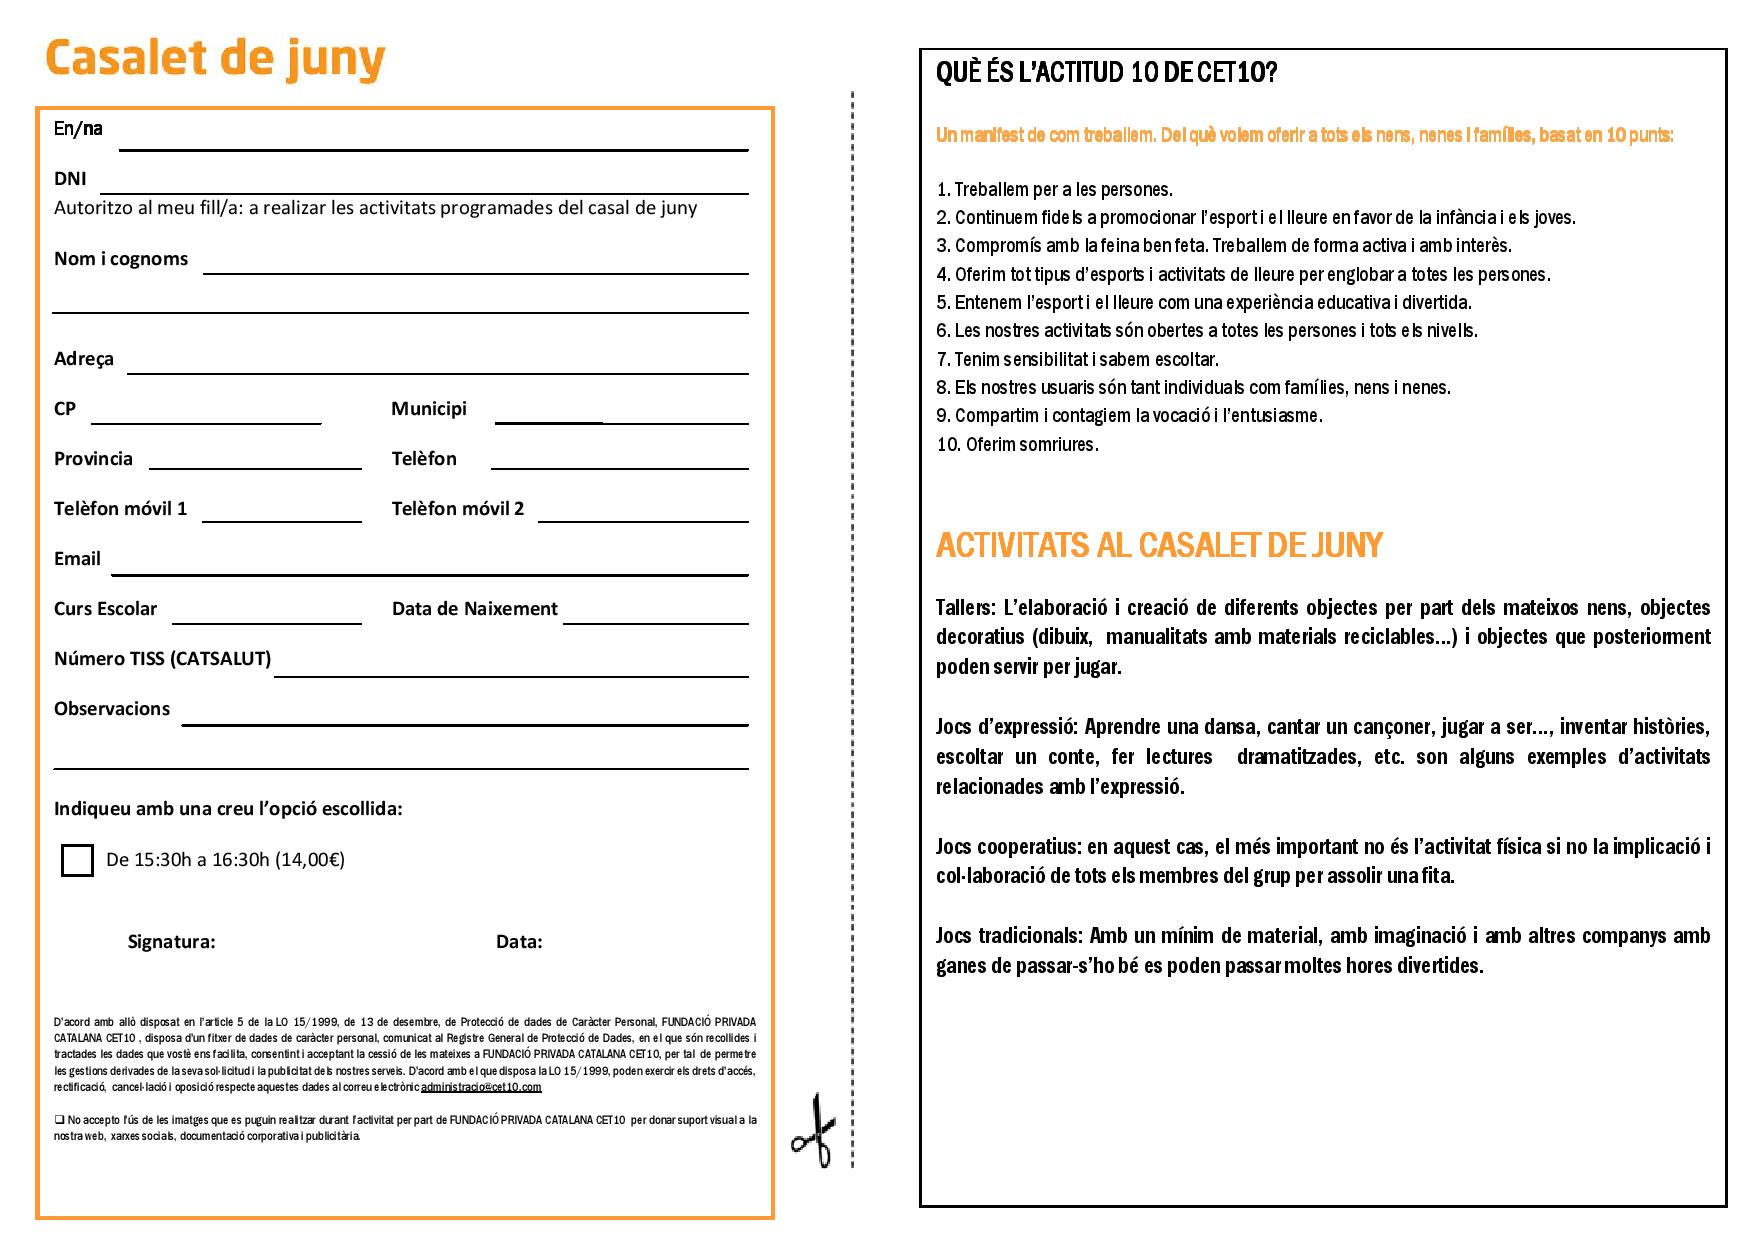 INFO-CASALET JUNY PACO CANDEL 14-page-002